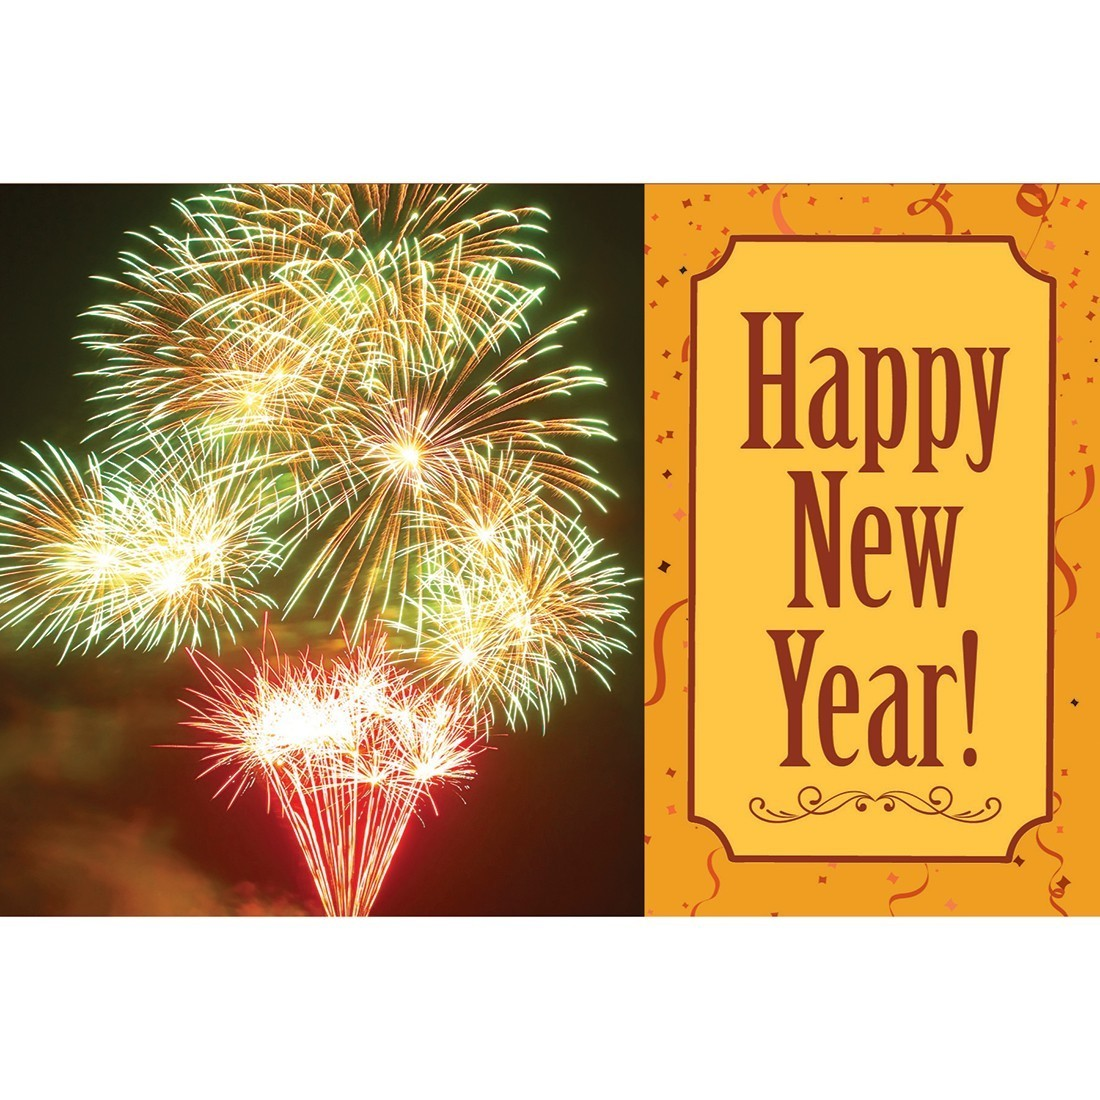 Happy New Year Fireworks Greeting Cards [image]